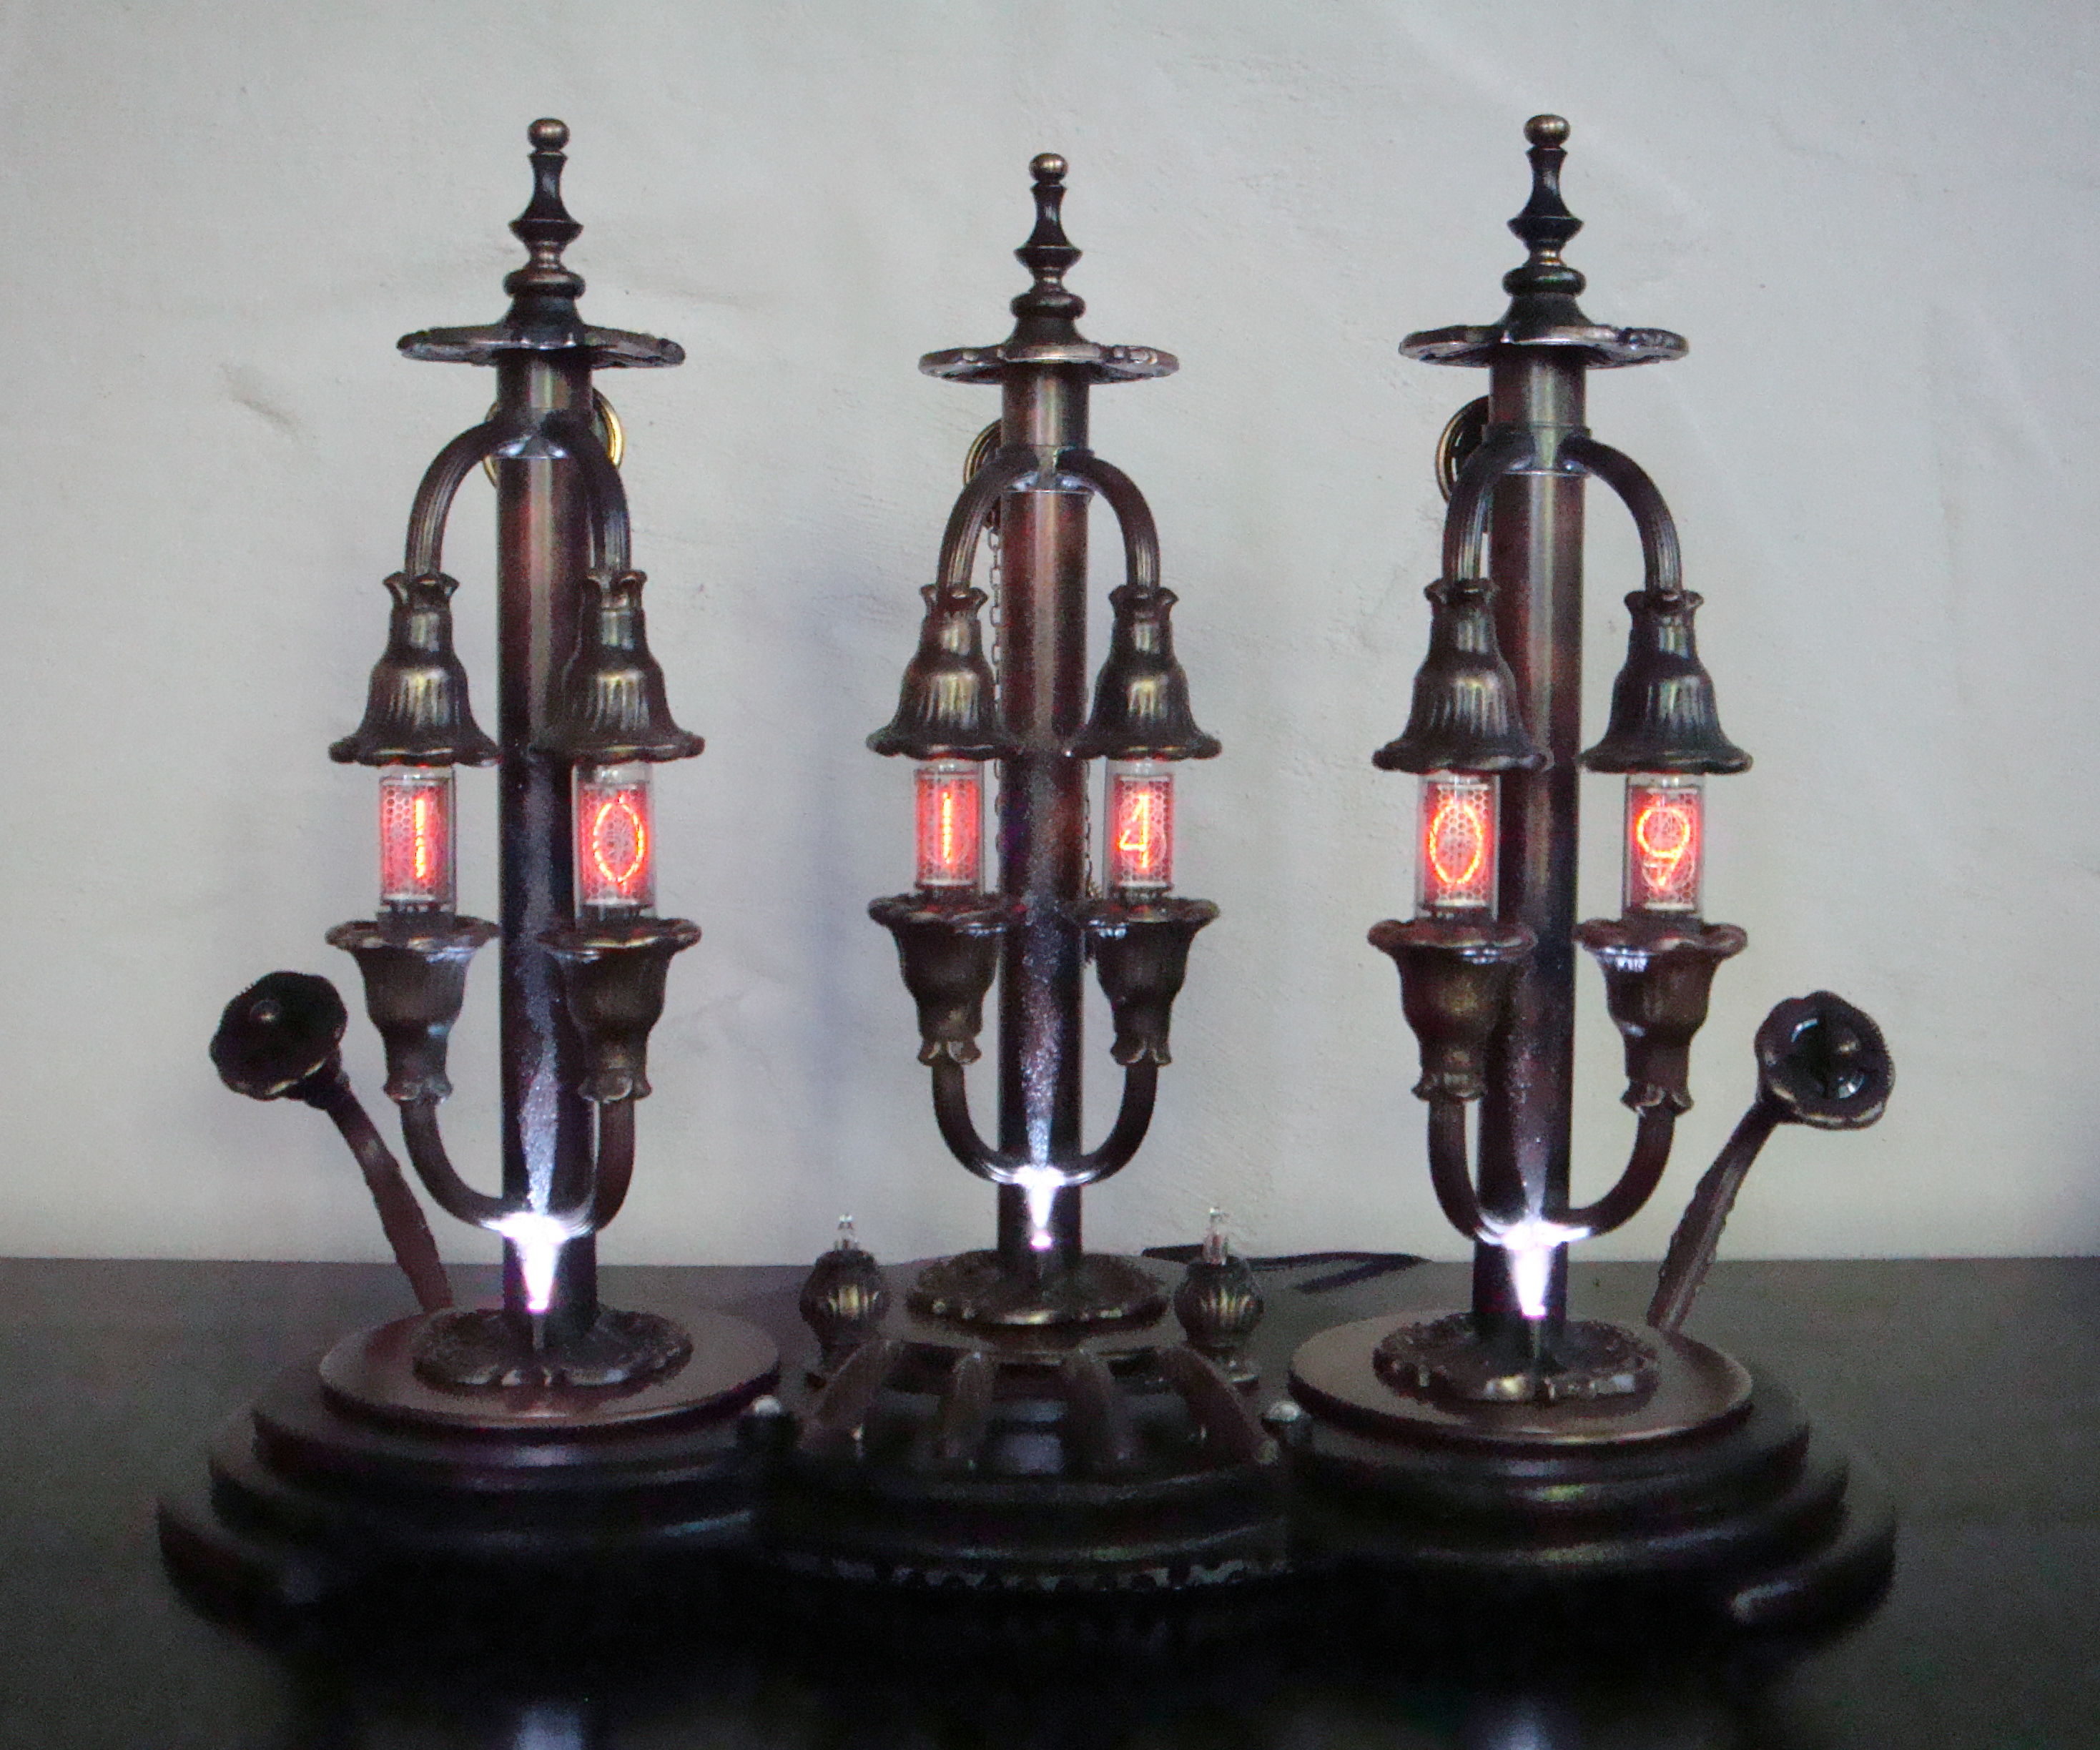 The Pillars of Time - A Steampunk Nixie Clock